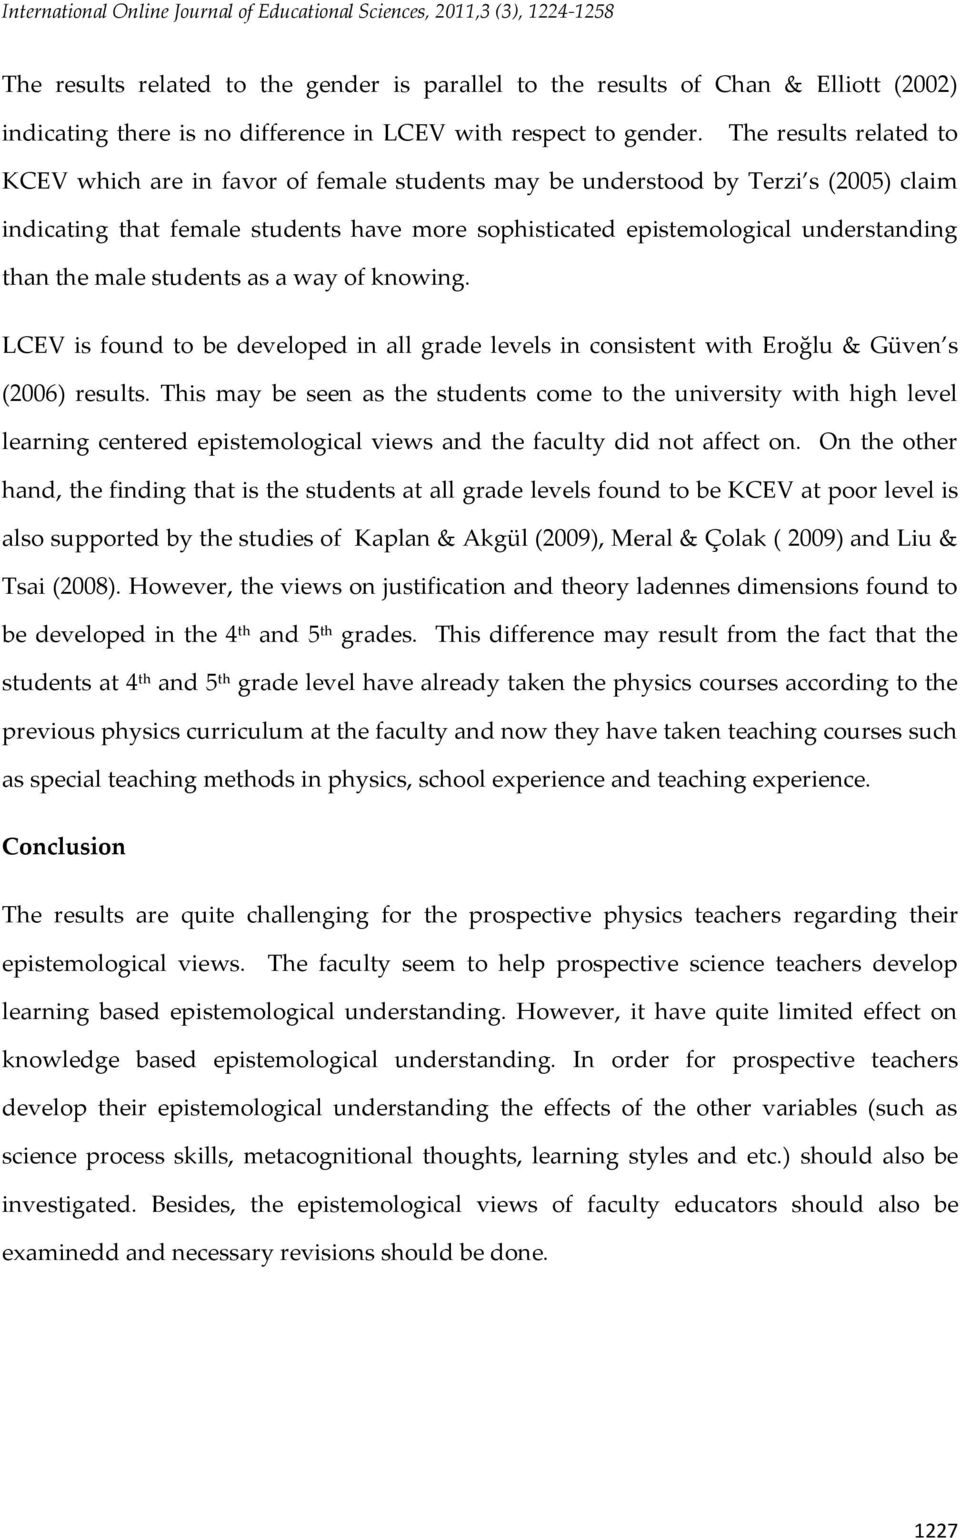 The results related to KCEV which are in favor of female students may be understood by Terzi s (2005) claim indicating that female students have more sophisticated epistemological understanding than